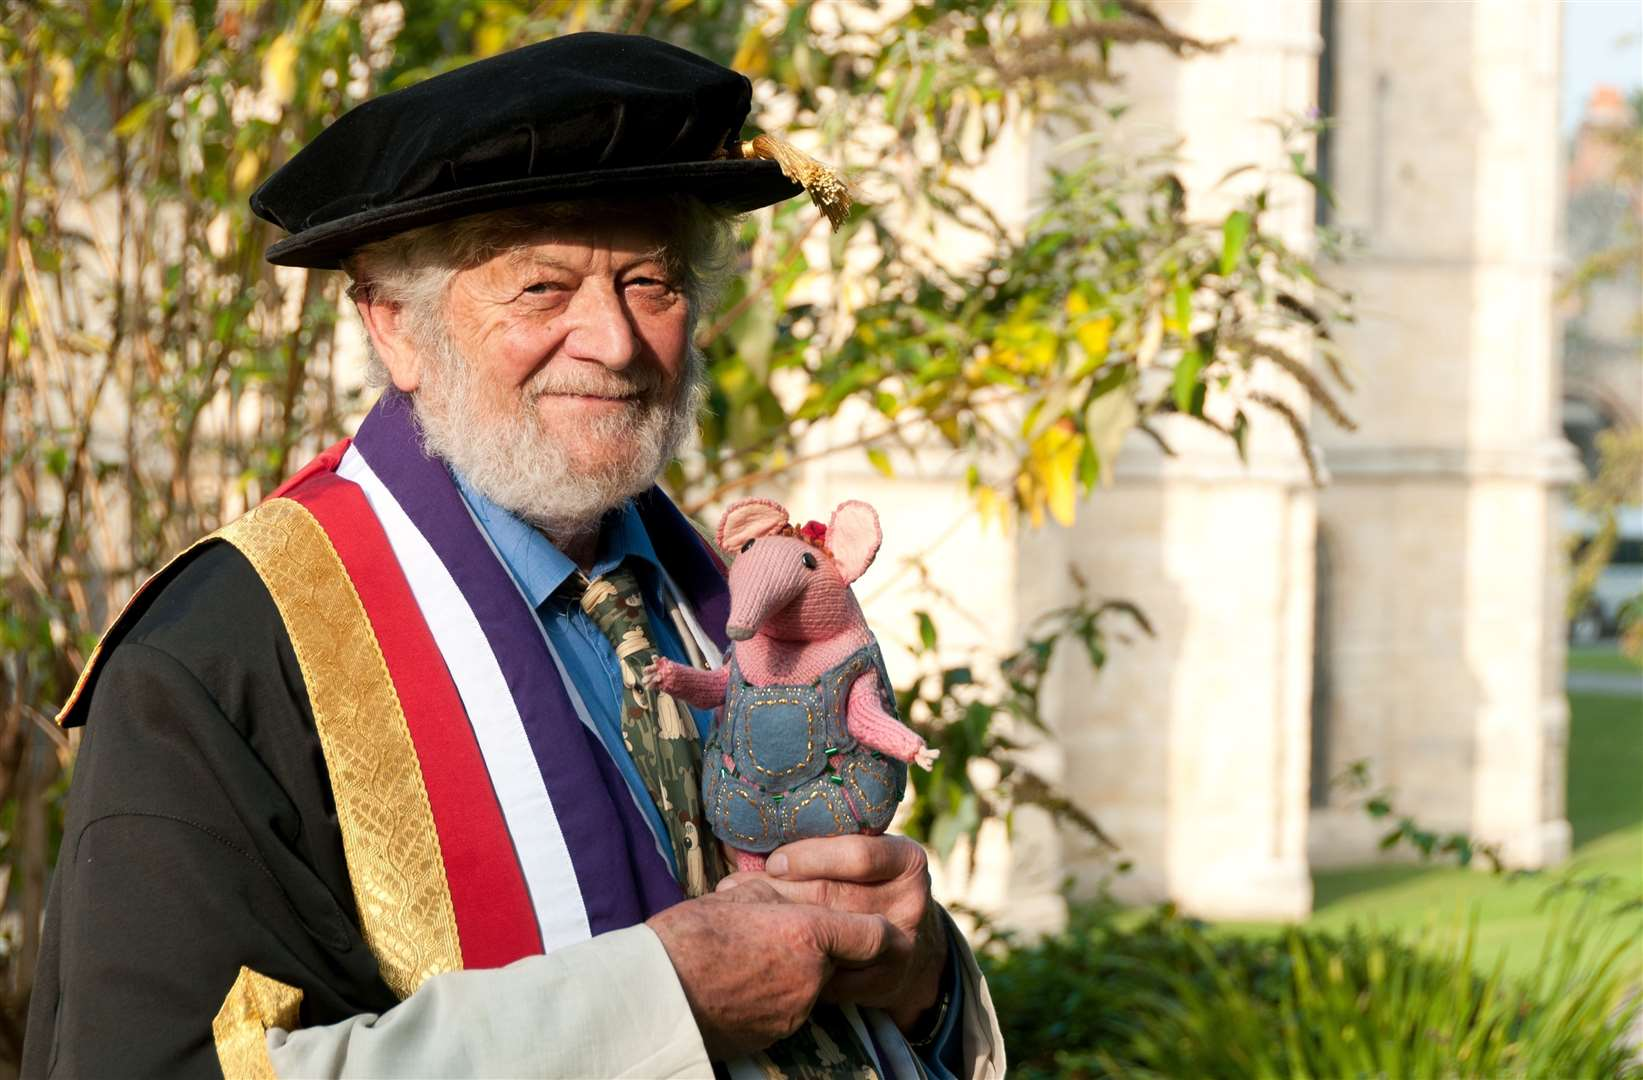 Peter Firmin receiving an honorary degree from Canterbury Christ Church University. Pic: Jeanette Earl